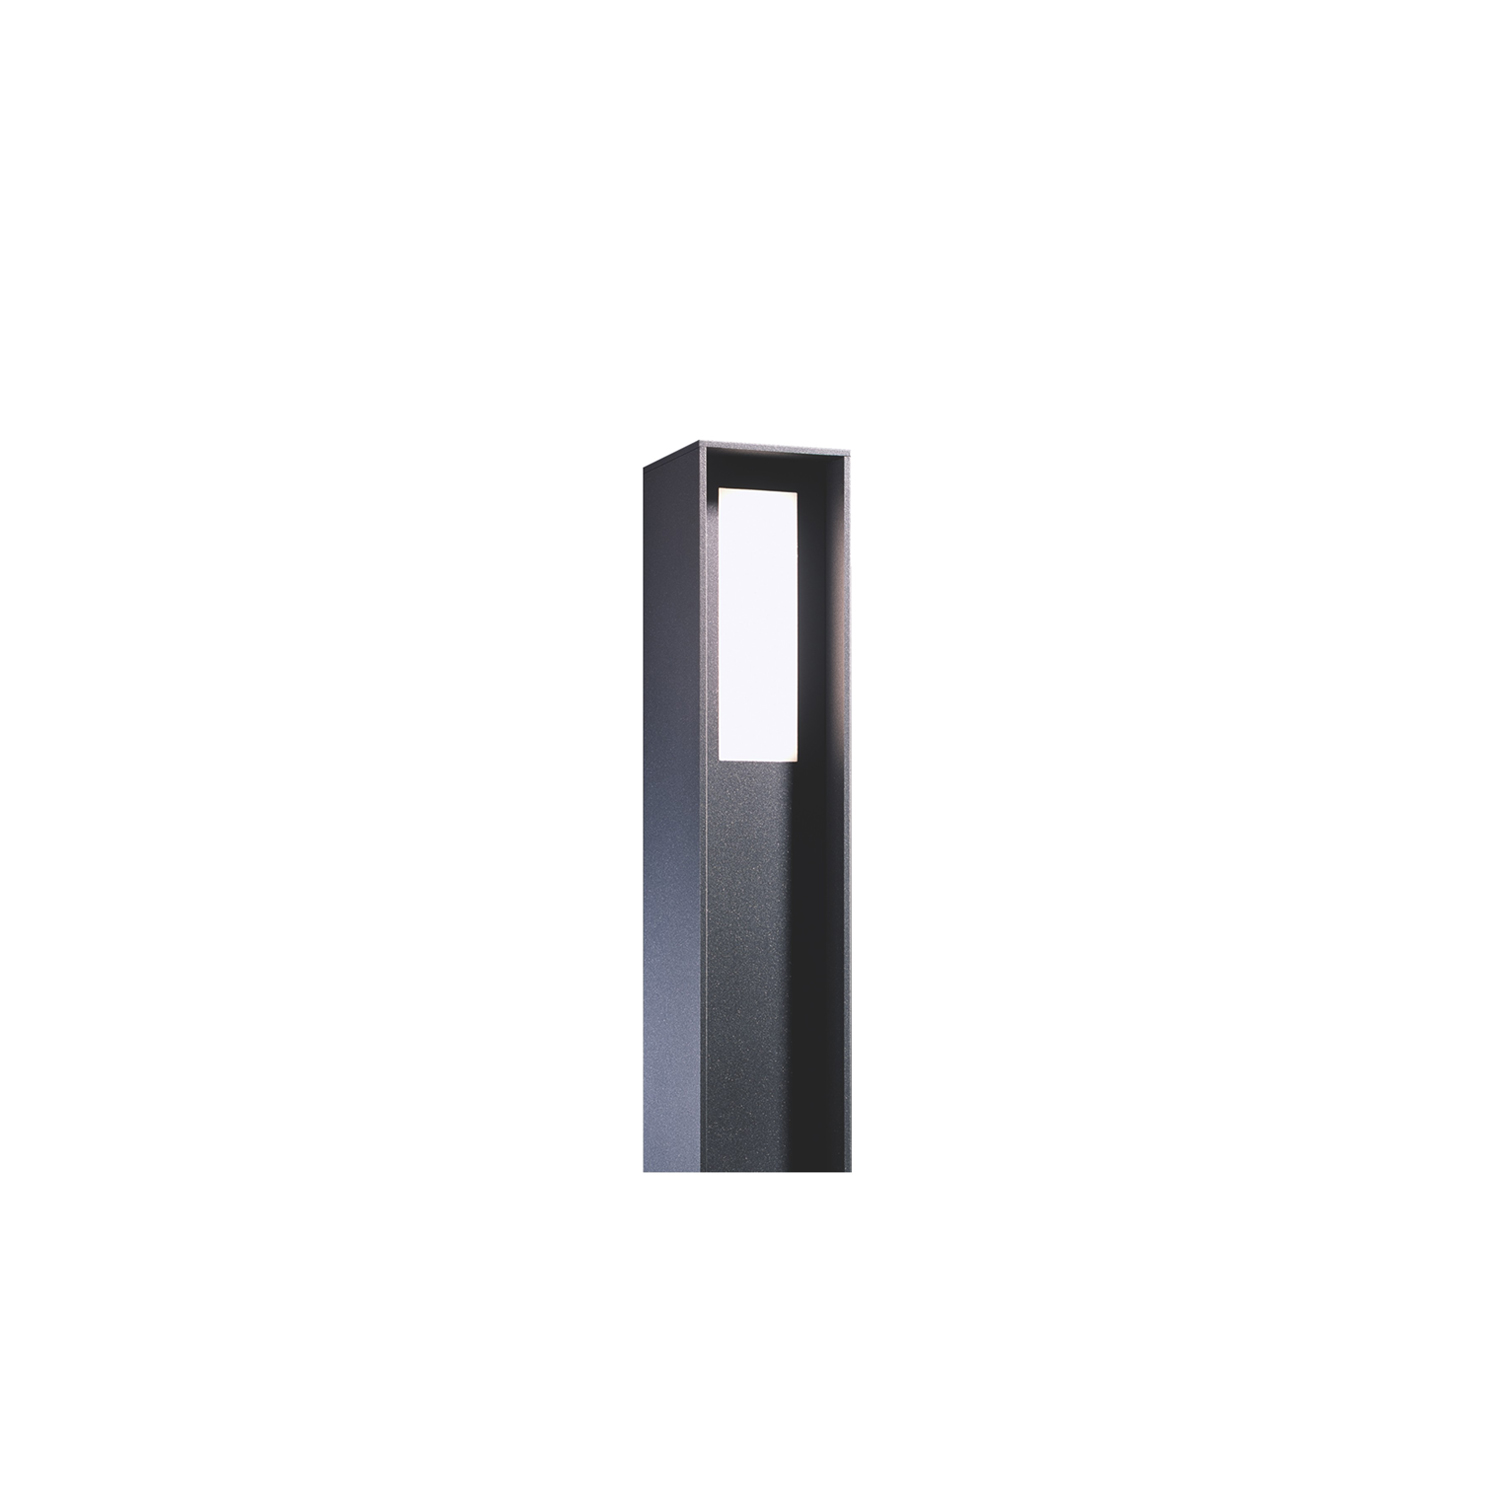 H Bollard Light - With a minimalistic design and the possibility of having a light output on up to three sides the bollard blend in very well in modern architecture and gives a lot of opportunities for tailored use. With the base for surface mounting or for inground installation by an additional earth anchor. An additional adaptor plate is needed for installation on uneven ground. Adaptor plate and earth anchor to be ordered separately.  | Matter of Stuff